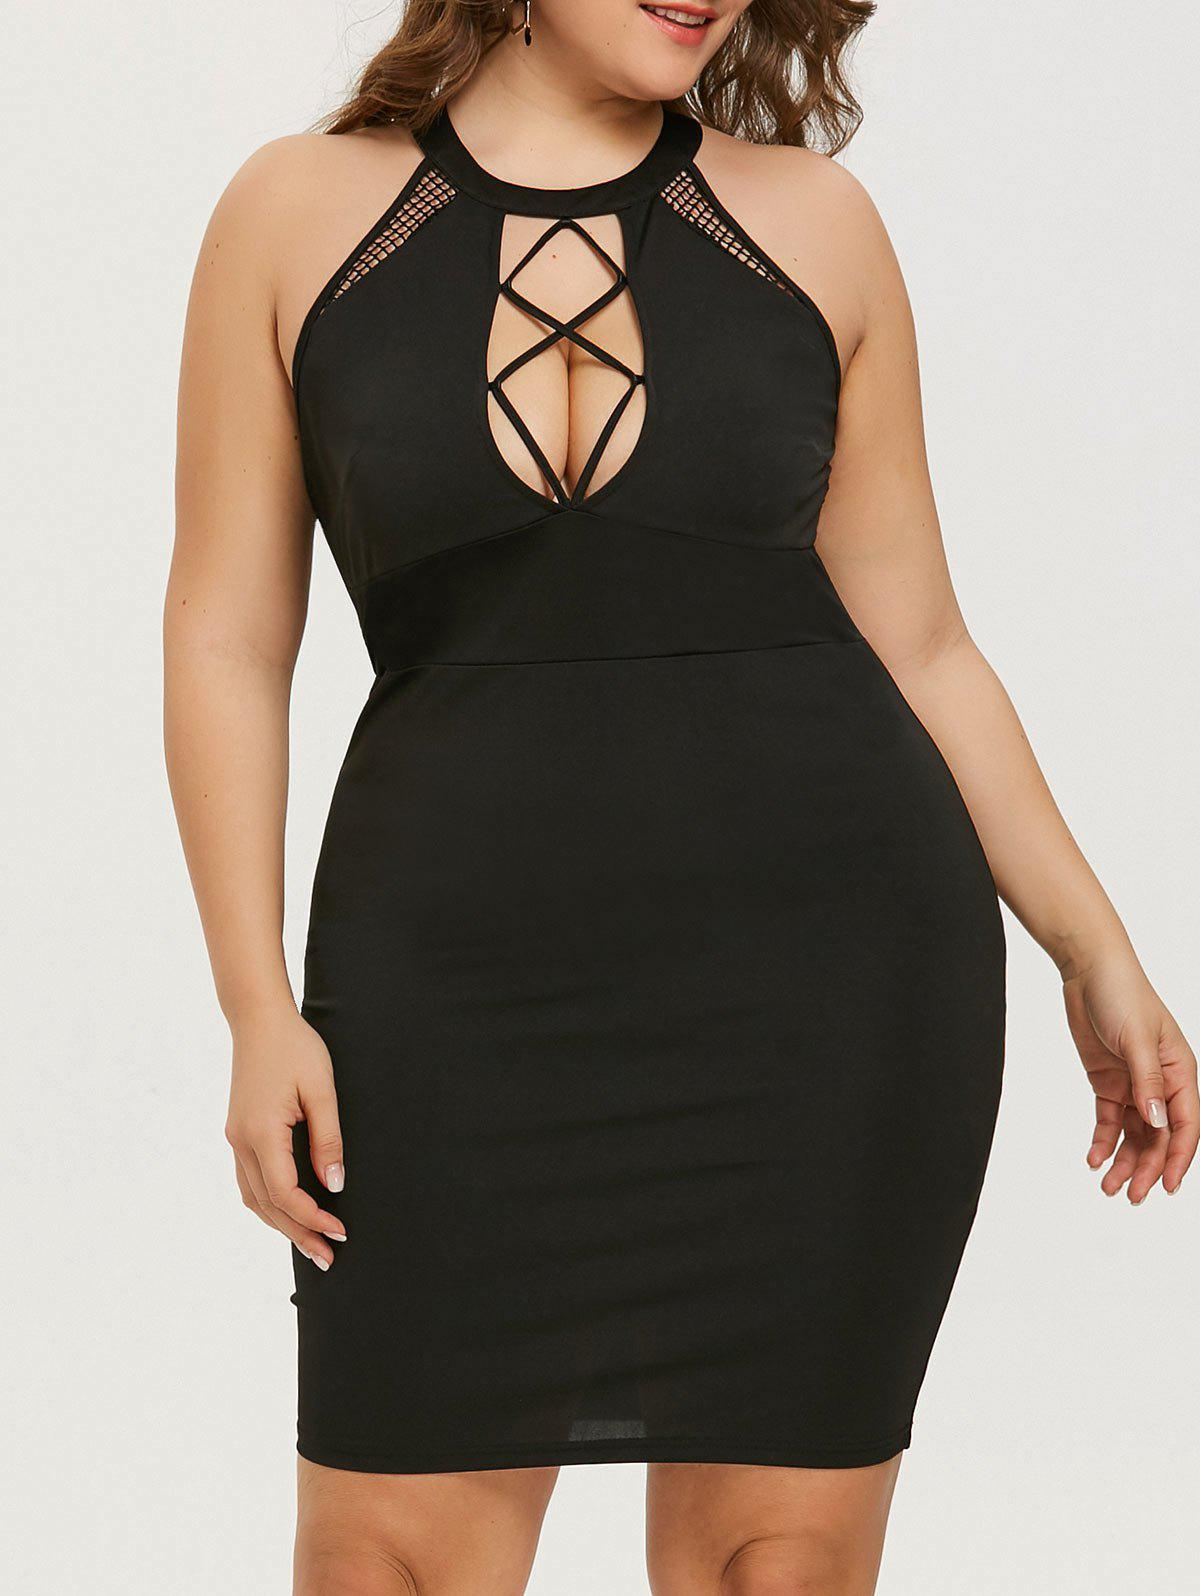 1afd9328670 47% OFF  Mini Plus Size Cut Out Bodycon Dress